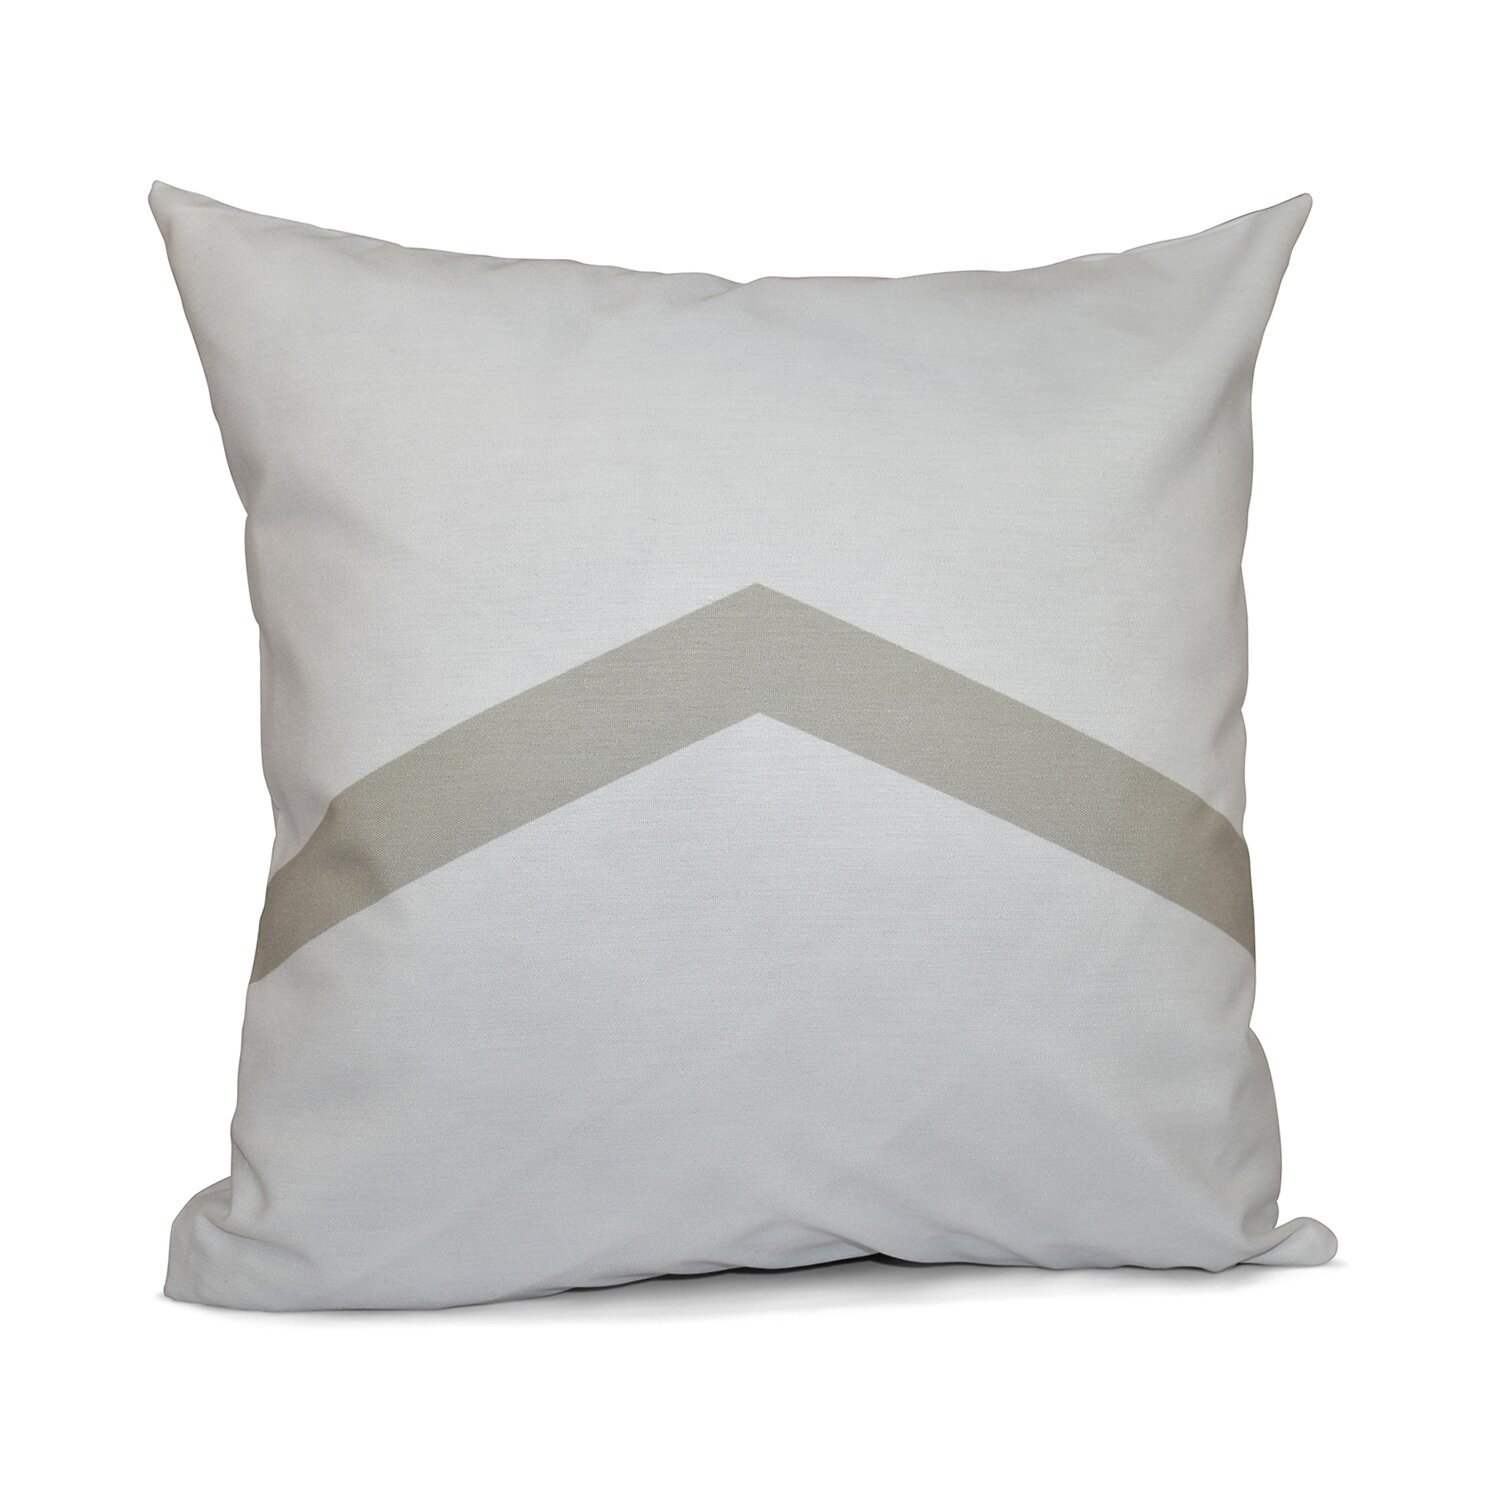 Down Throw Pillows For Couch : Mercury Row Down Throw Pillow & Reviews Wayfair.ca